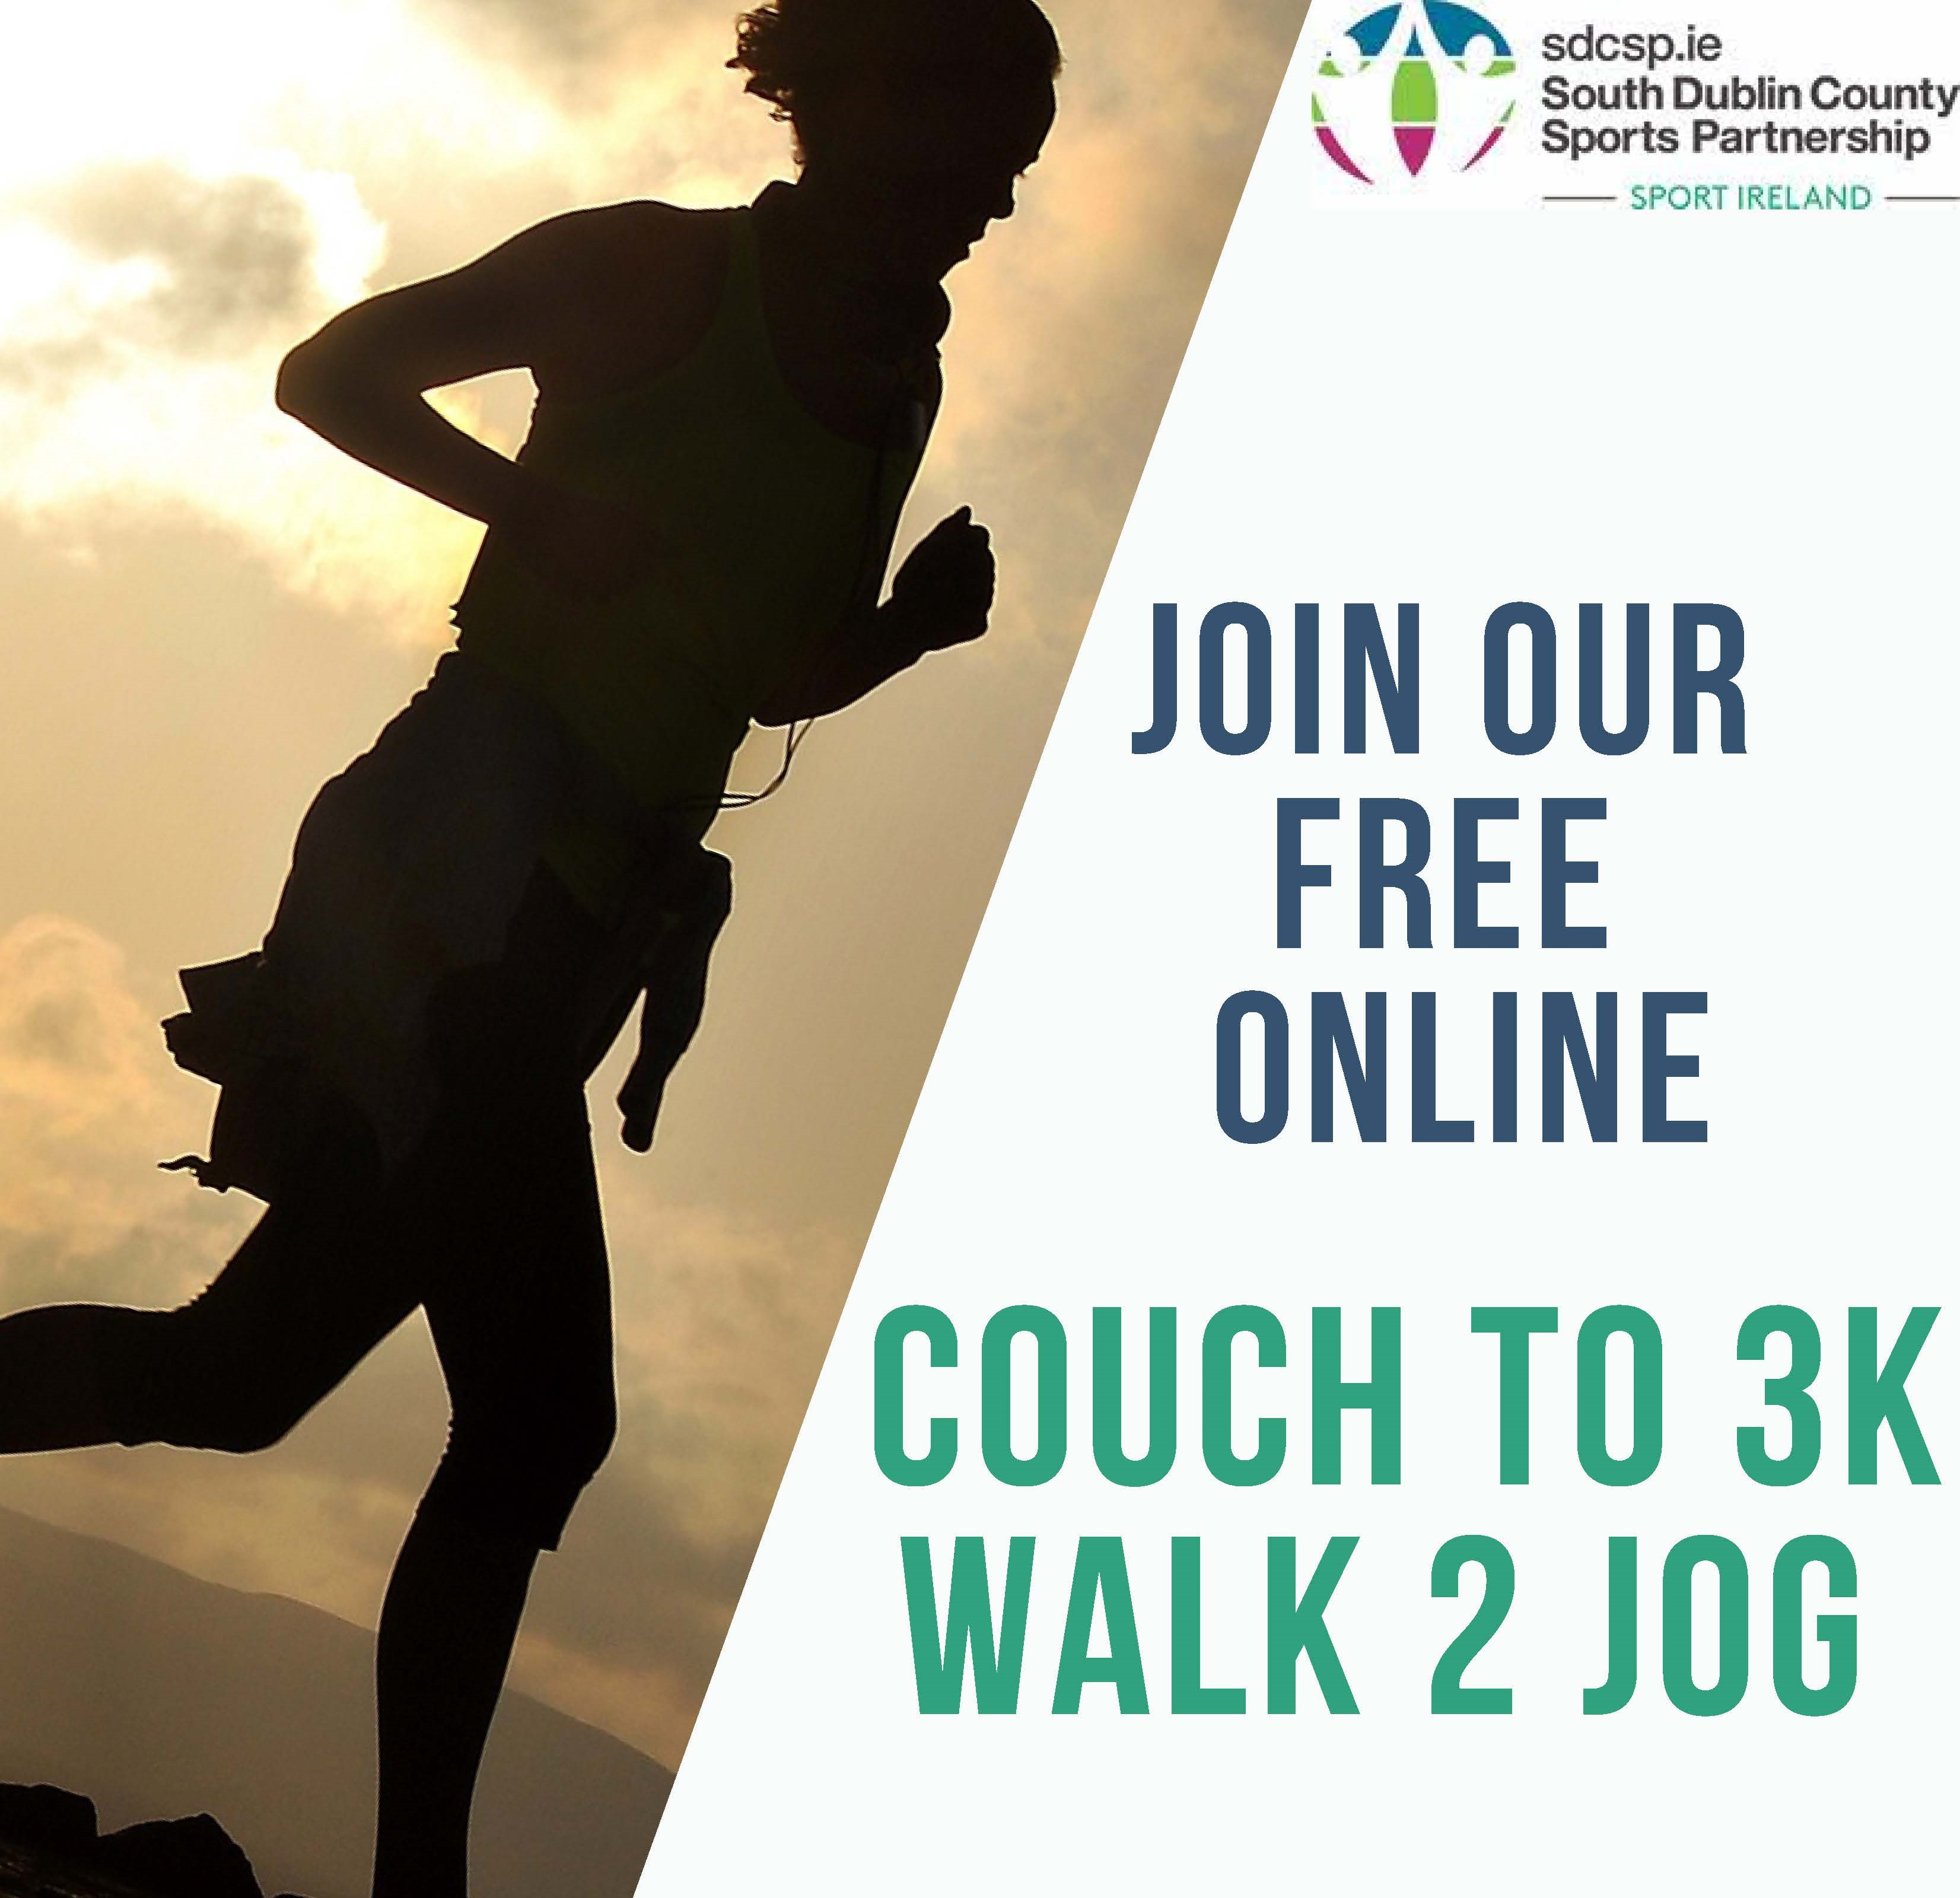 Stay Active During Covid-19